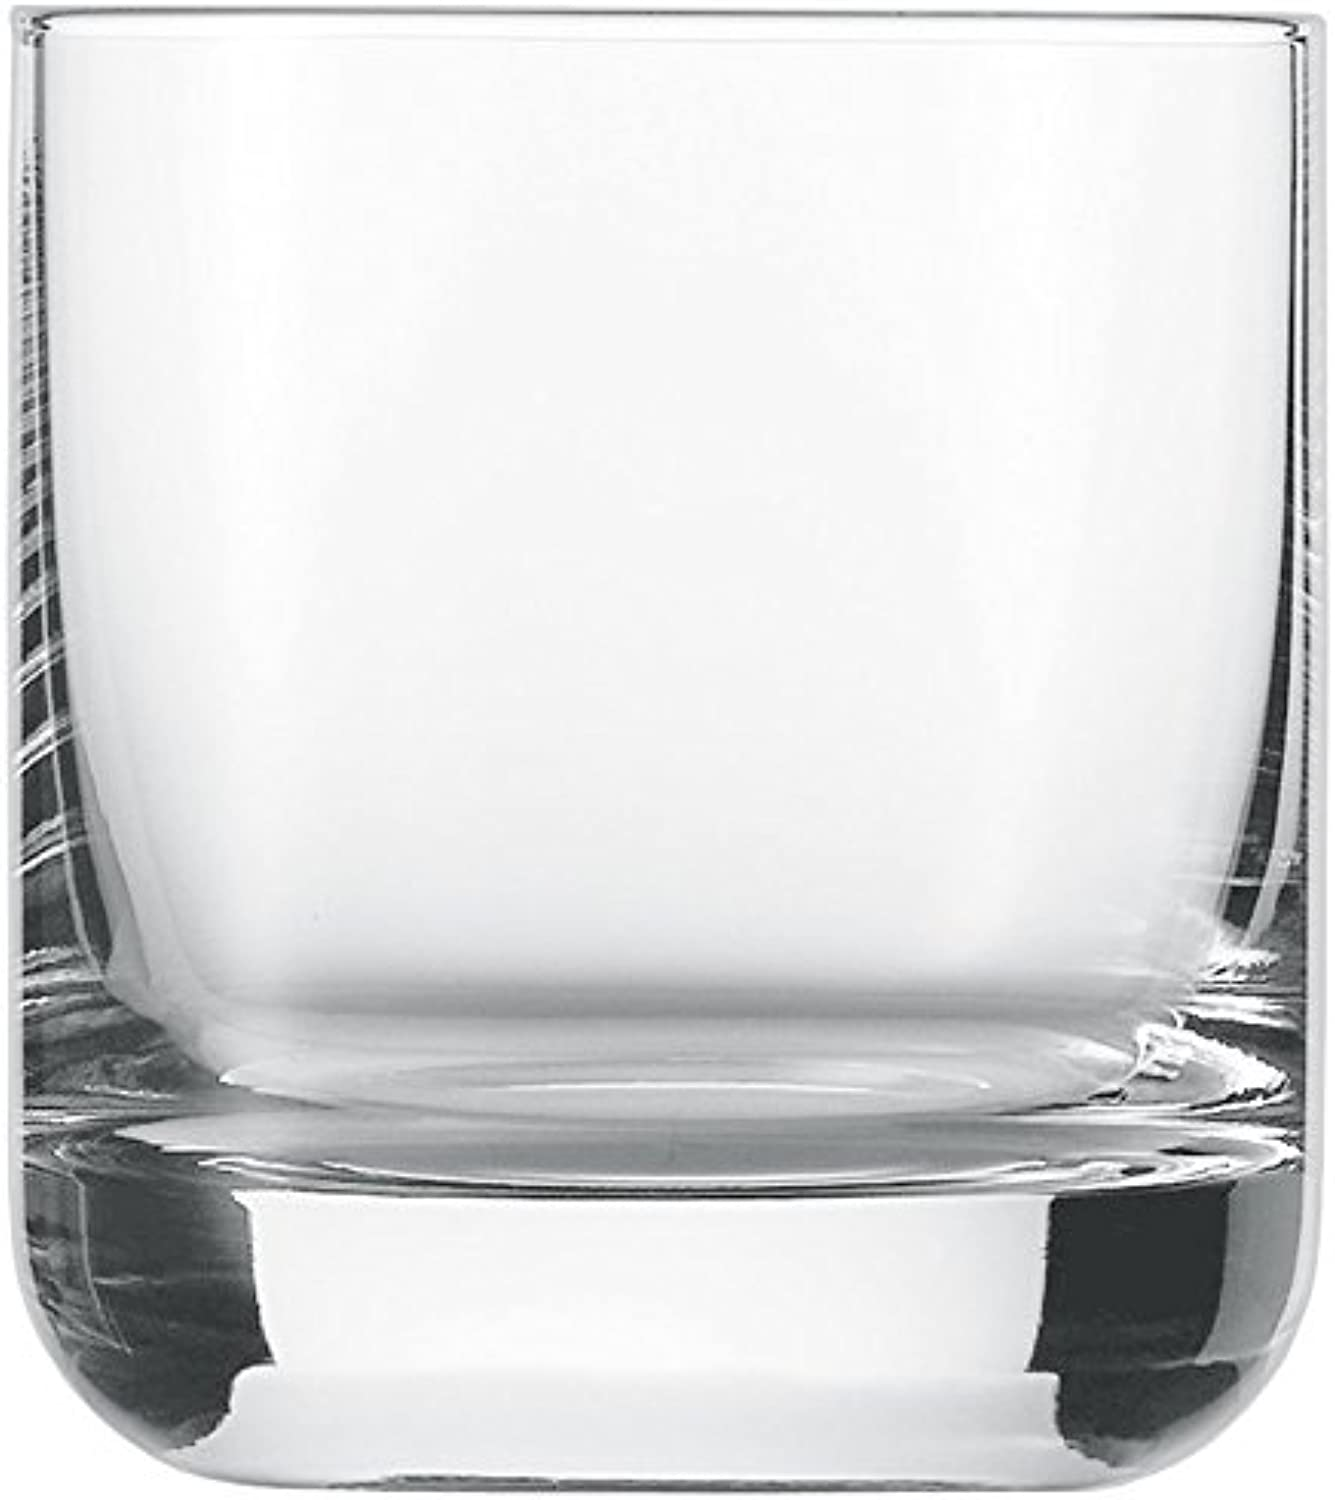 Schott Zwiesel Tritan Crystal Glass Convention Barware Collection Old Fashioned Whiskey Cocktail Glass, 9.6-Ounce, Set of 6